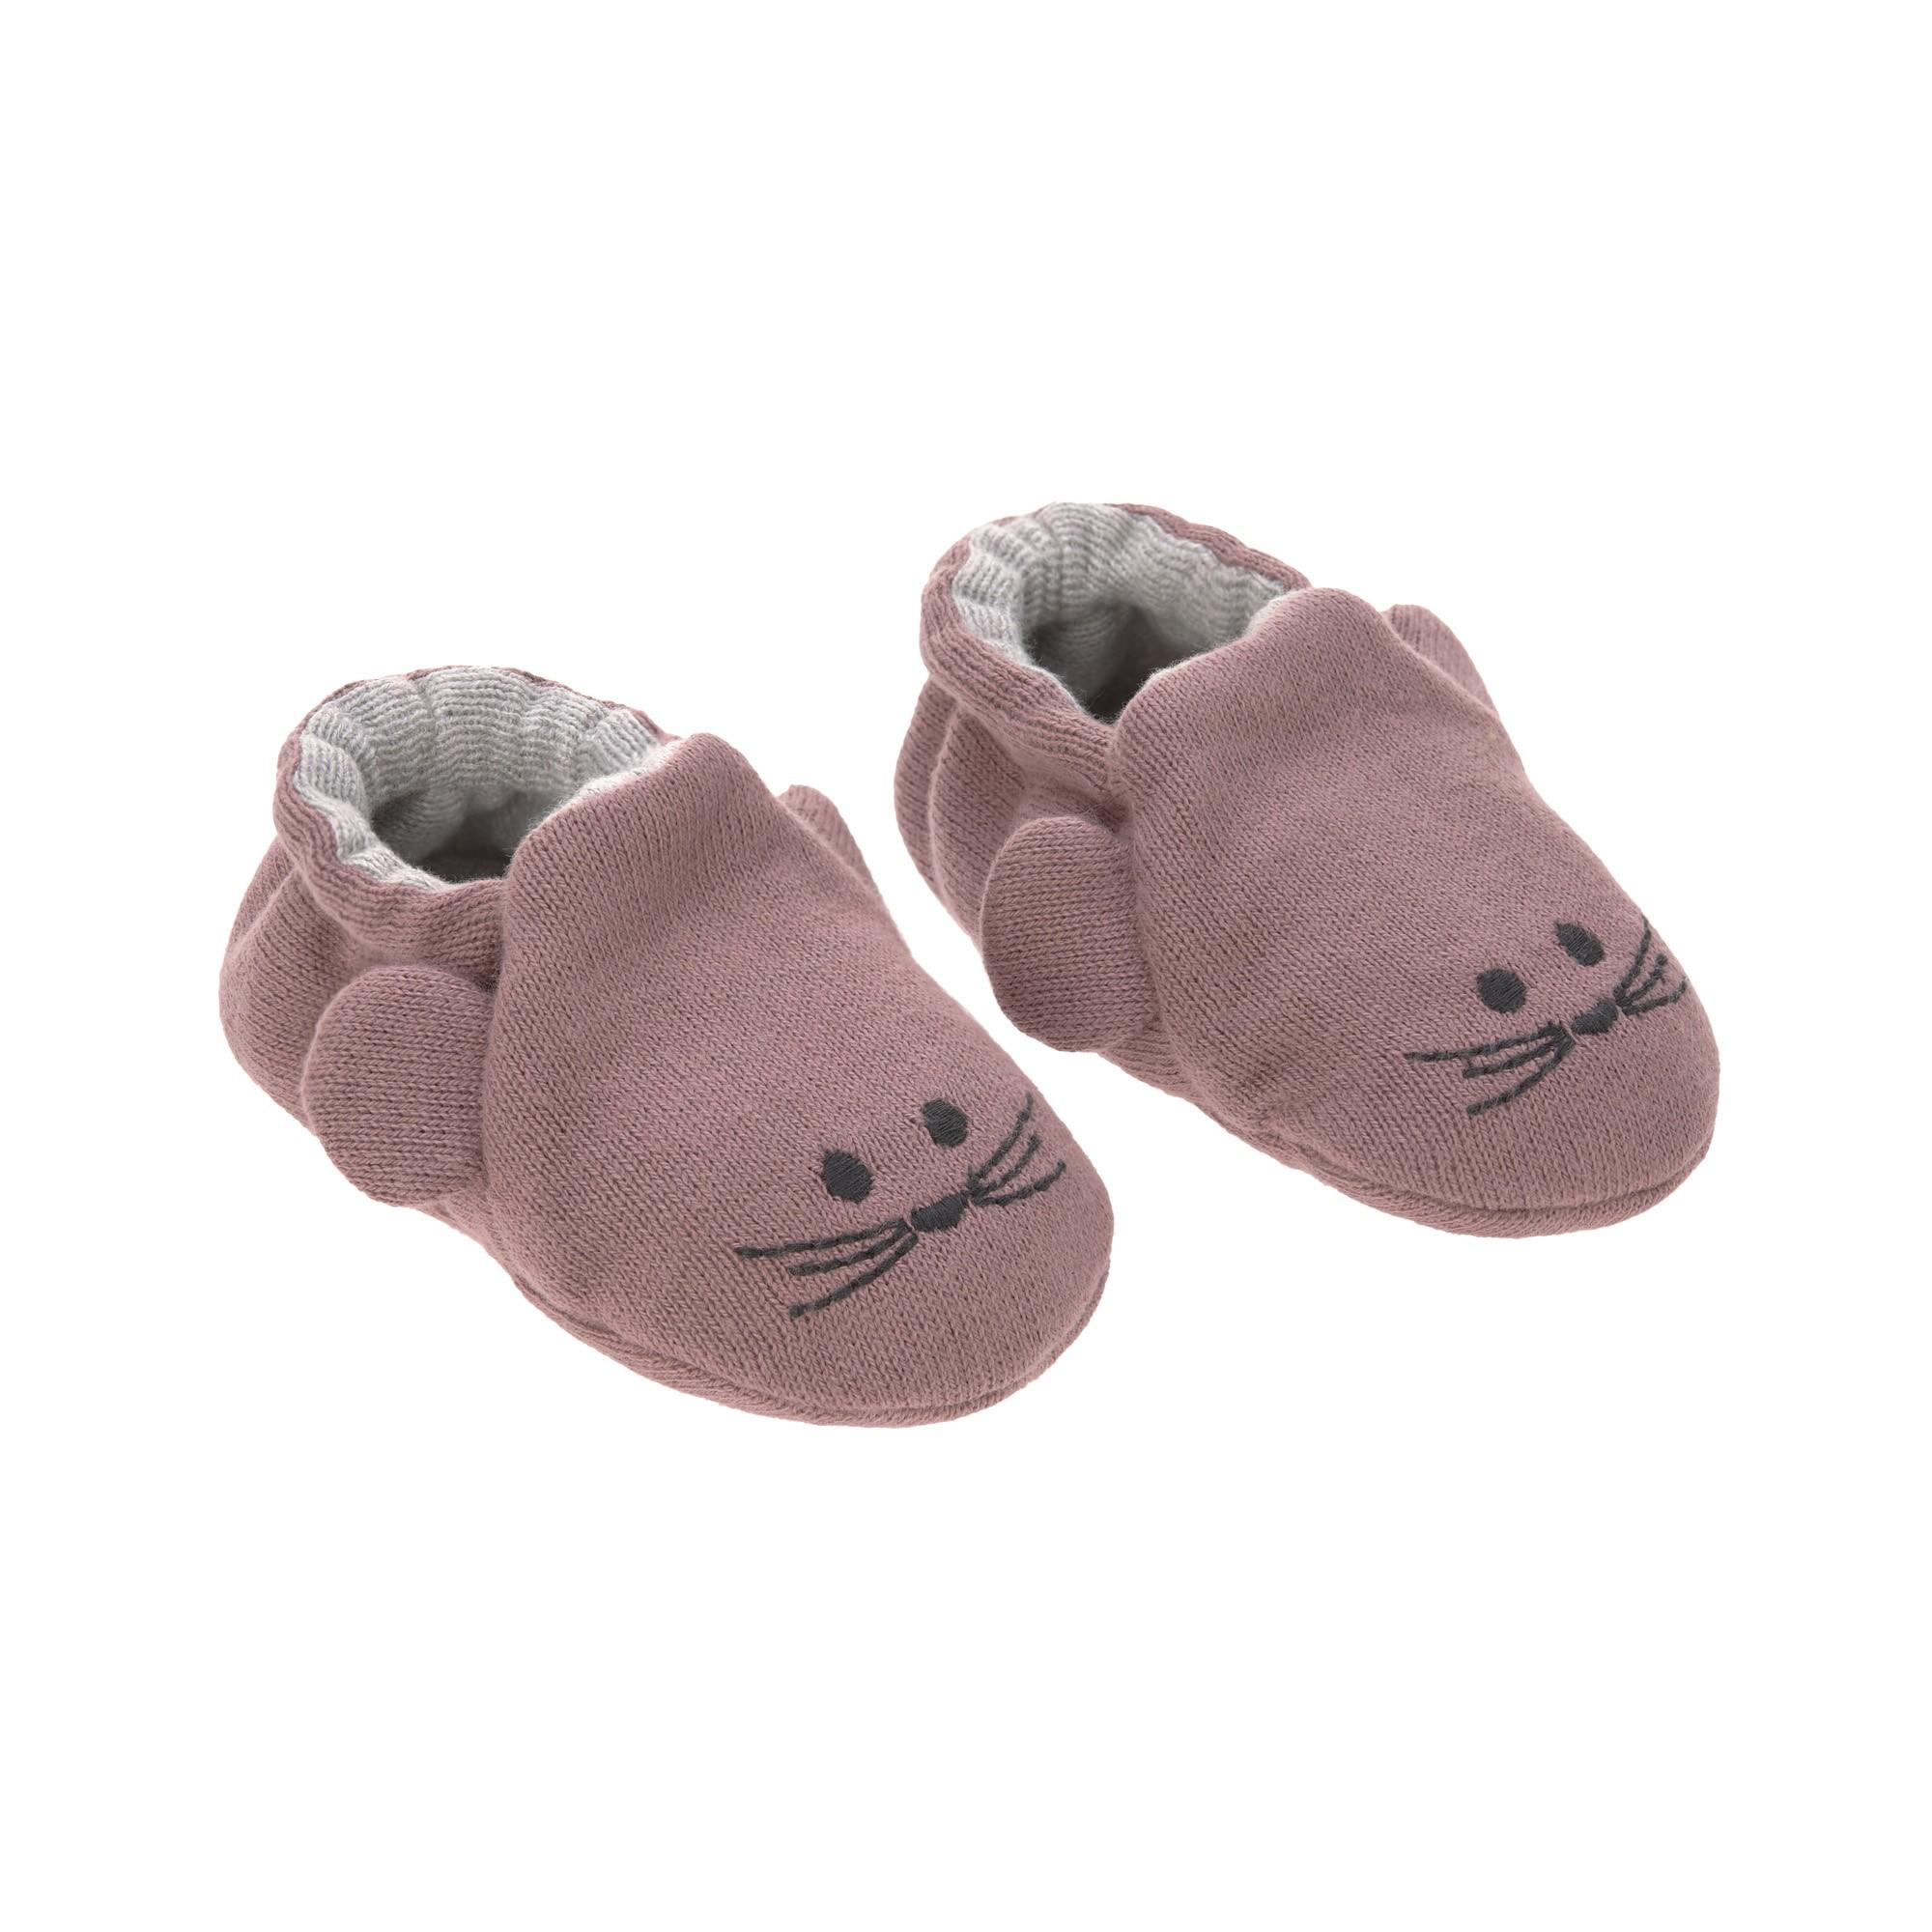 Lassig - Baby Shoes Gots Little Chums Mouse, One Size